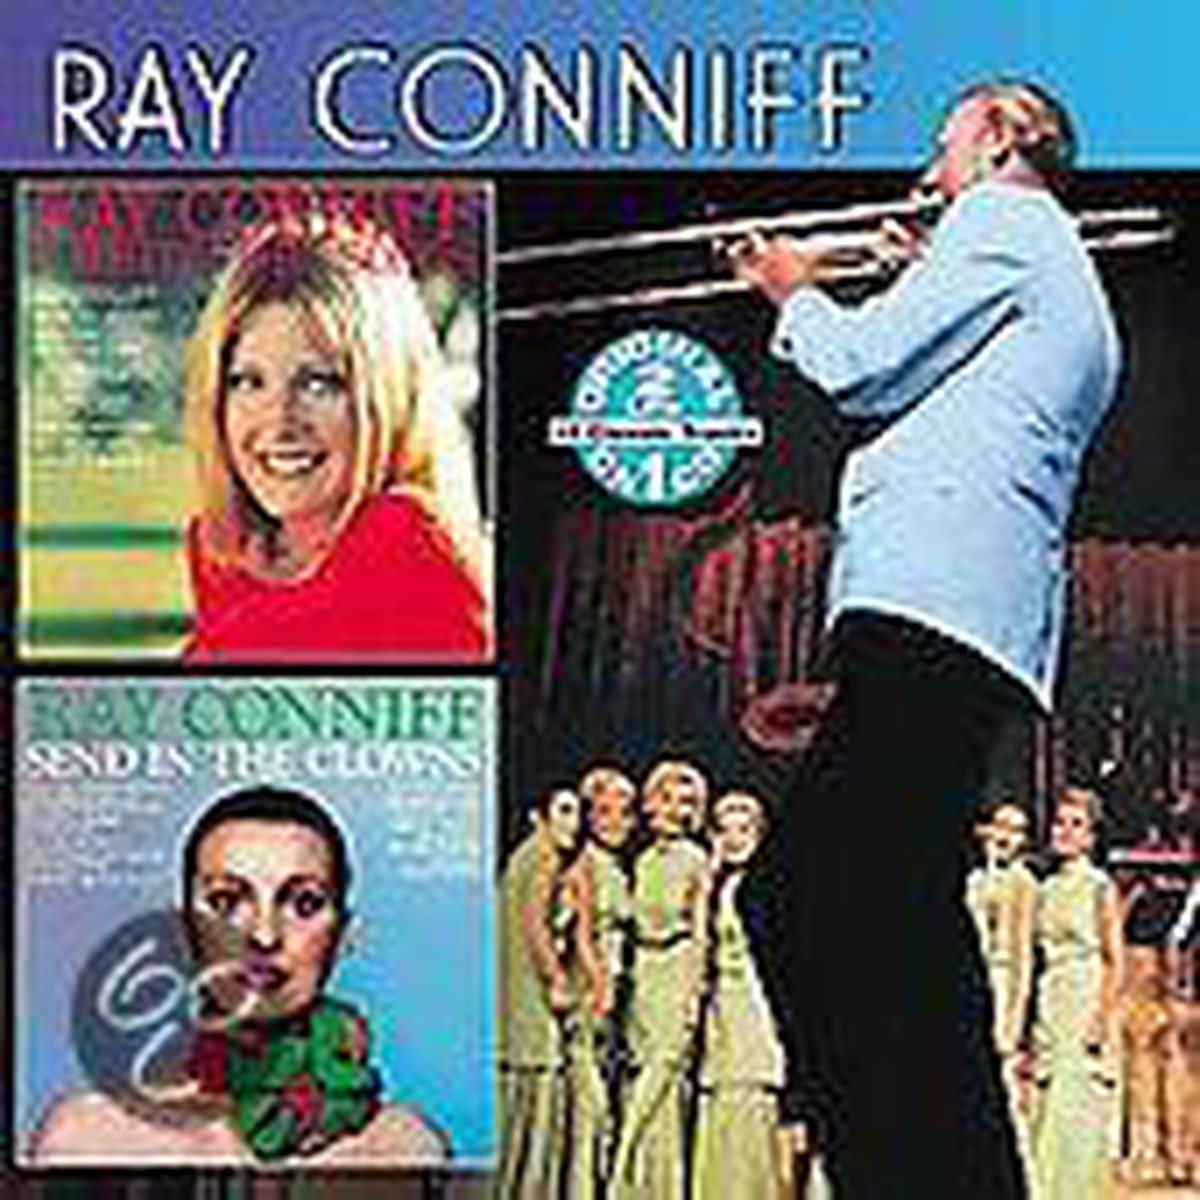 I Write the Songs/Send in the Clowns - Ray Conniff